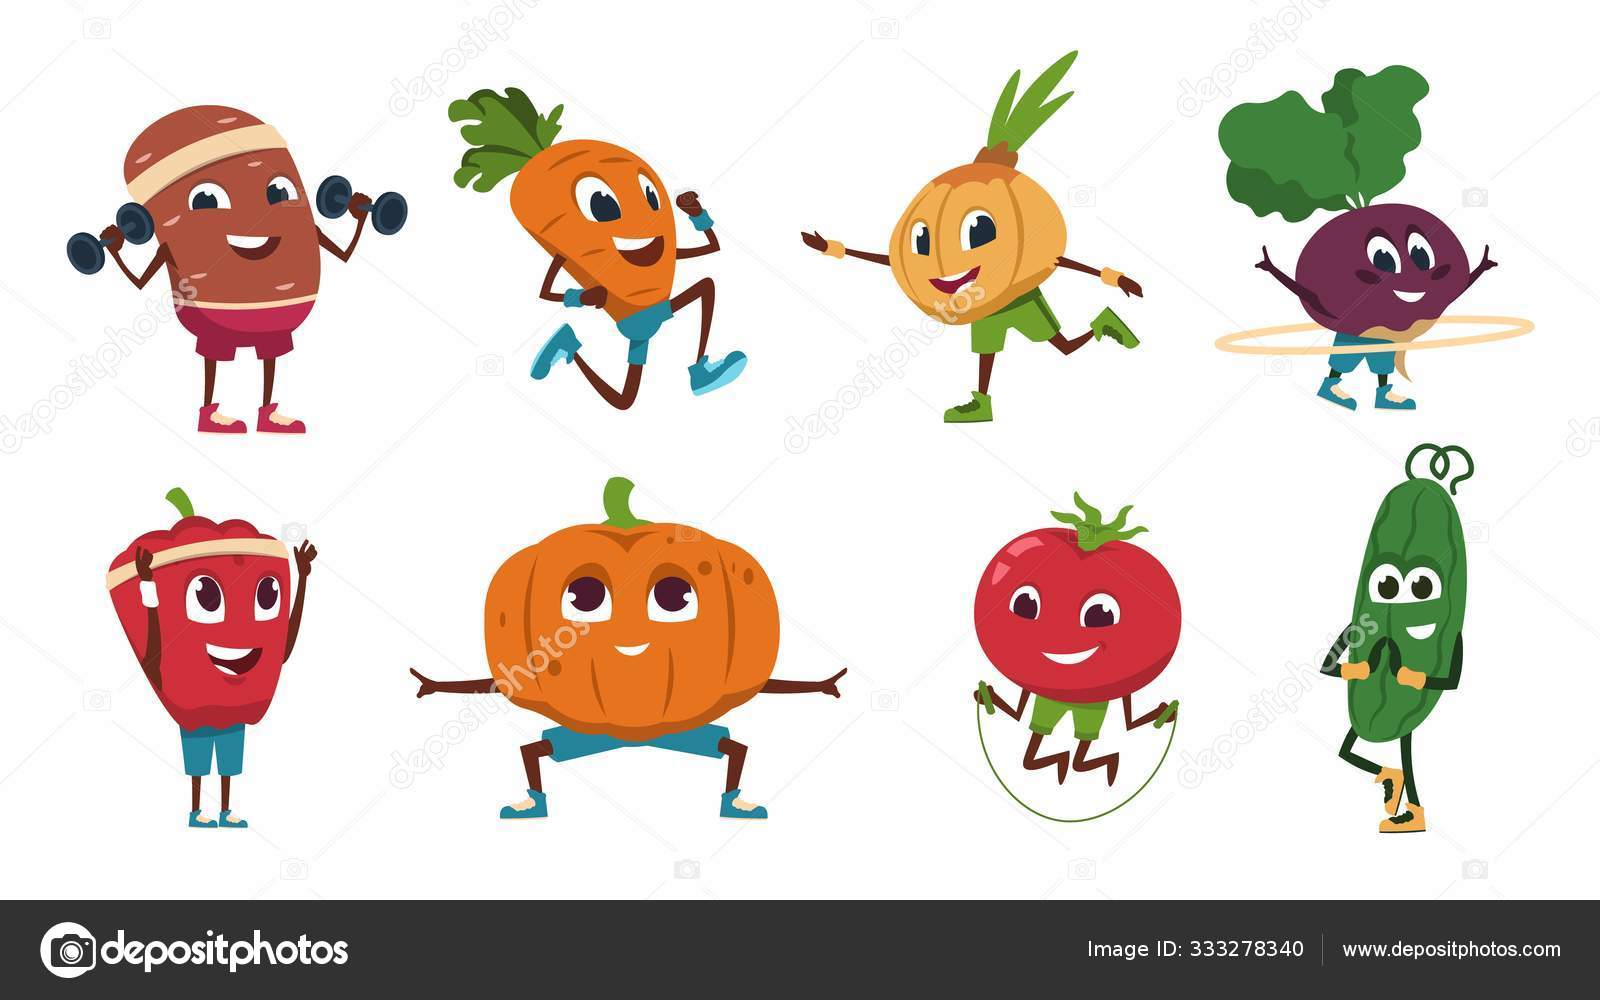 Cartoon Vegetables Exercises Healthy Food Characters Doing Fitness Activities And Sport Workout Vector Cute And Funny Vegetable Set Stock Vector C Spicytruffel 333278340